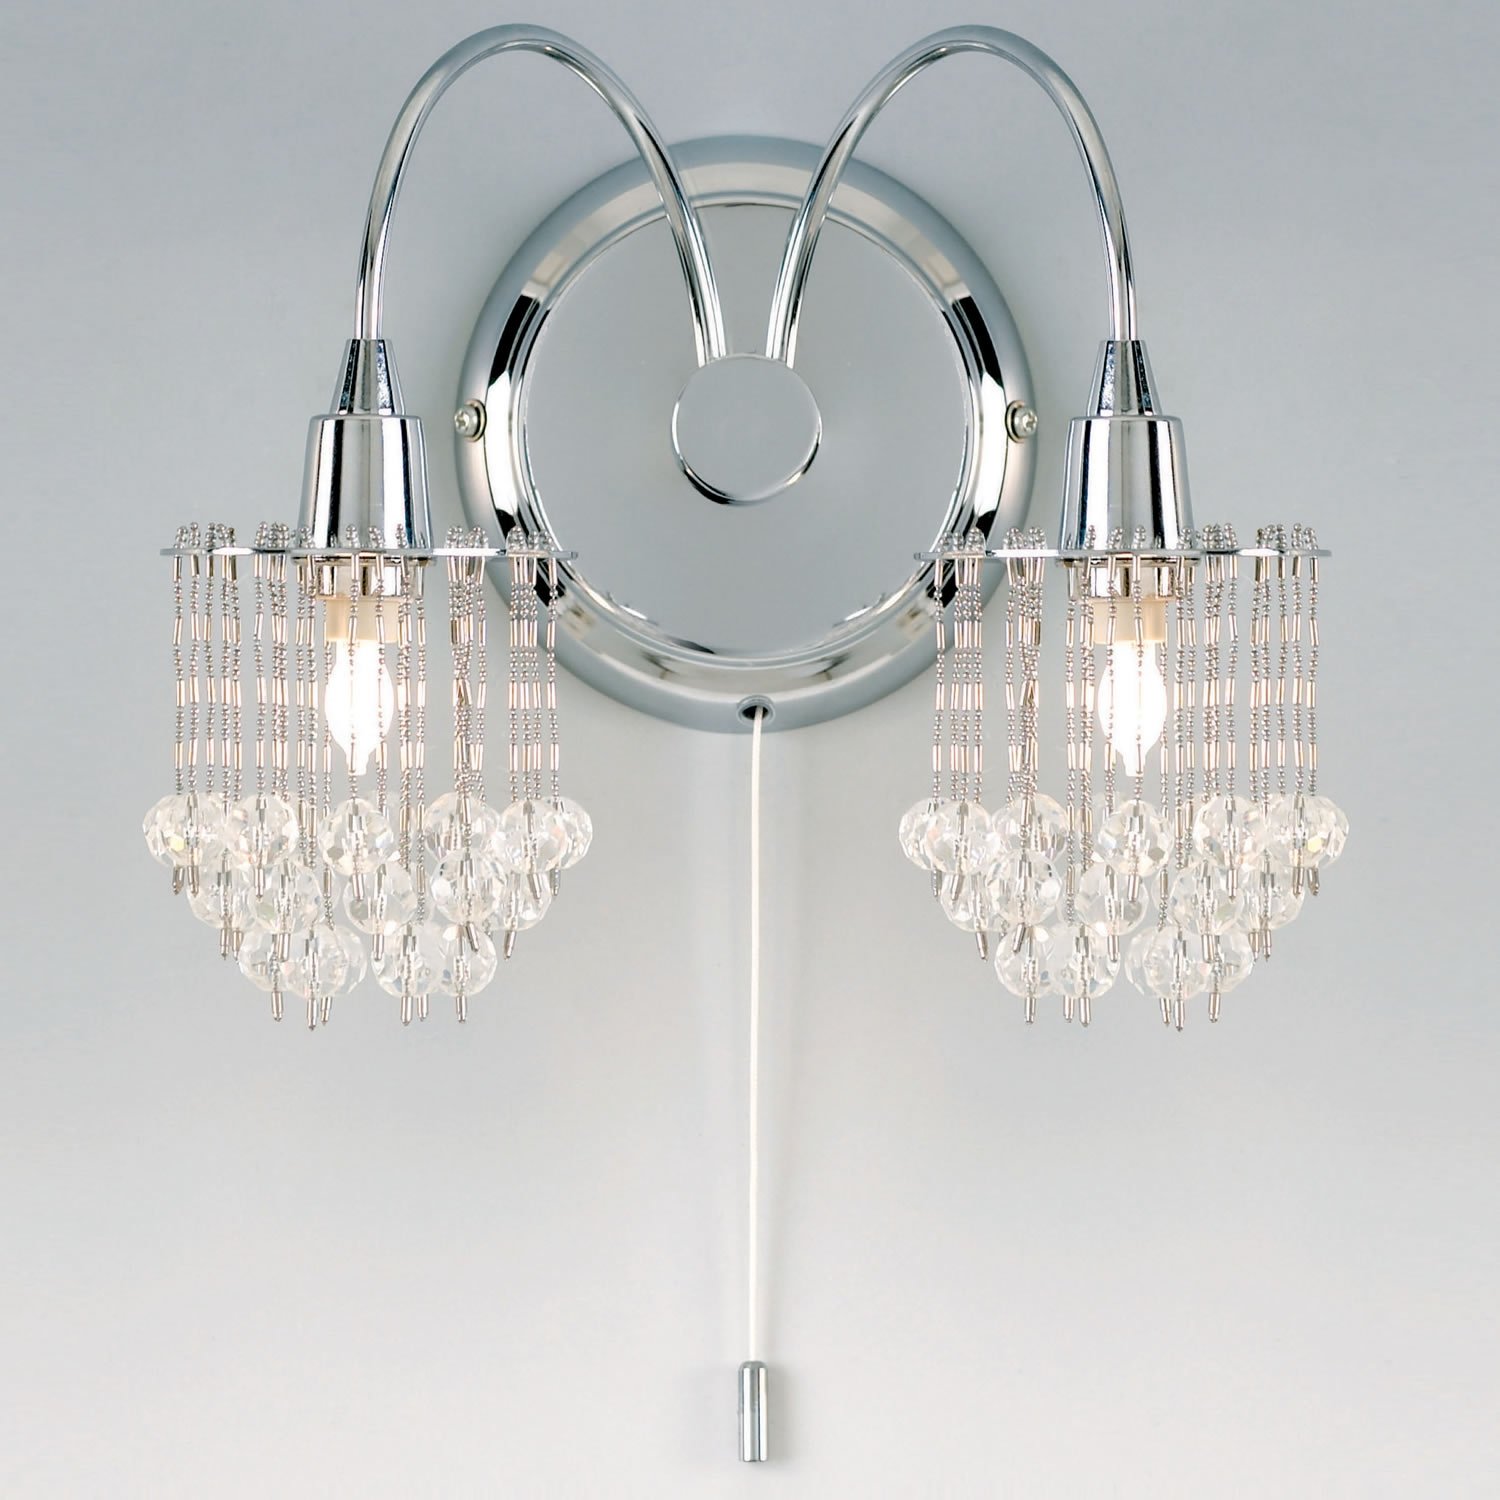 Endon Lighting 2 Light Wall Light In Crystal 850 2 Next Day Next Pertaining To Endon Lighting Chandeliers (View 19 of 25)